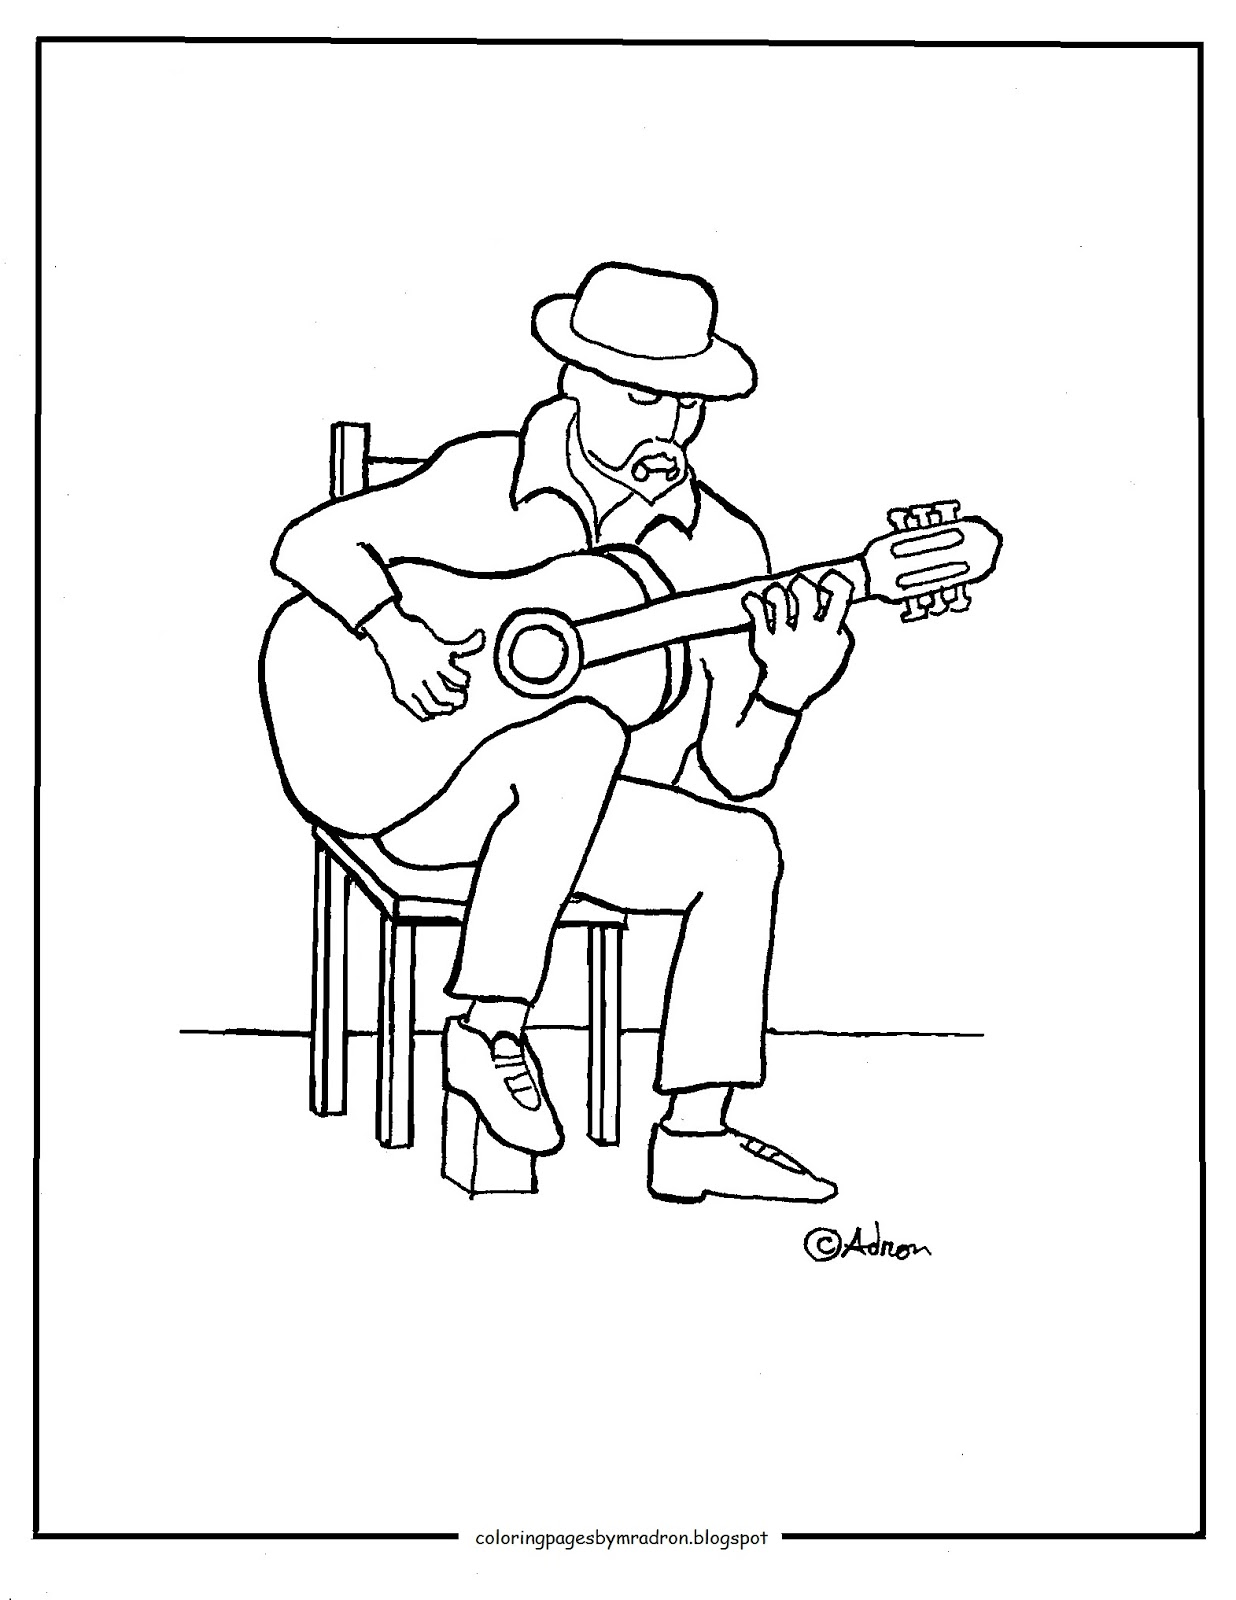 1236x1600 Liberal Guitar Player Coloring Page Pages For Kids